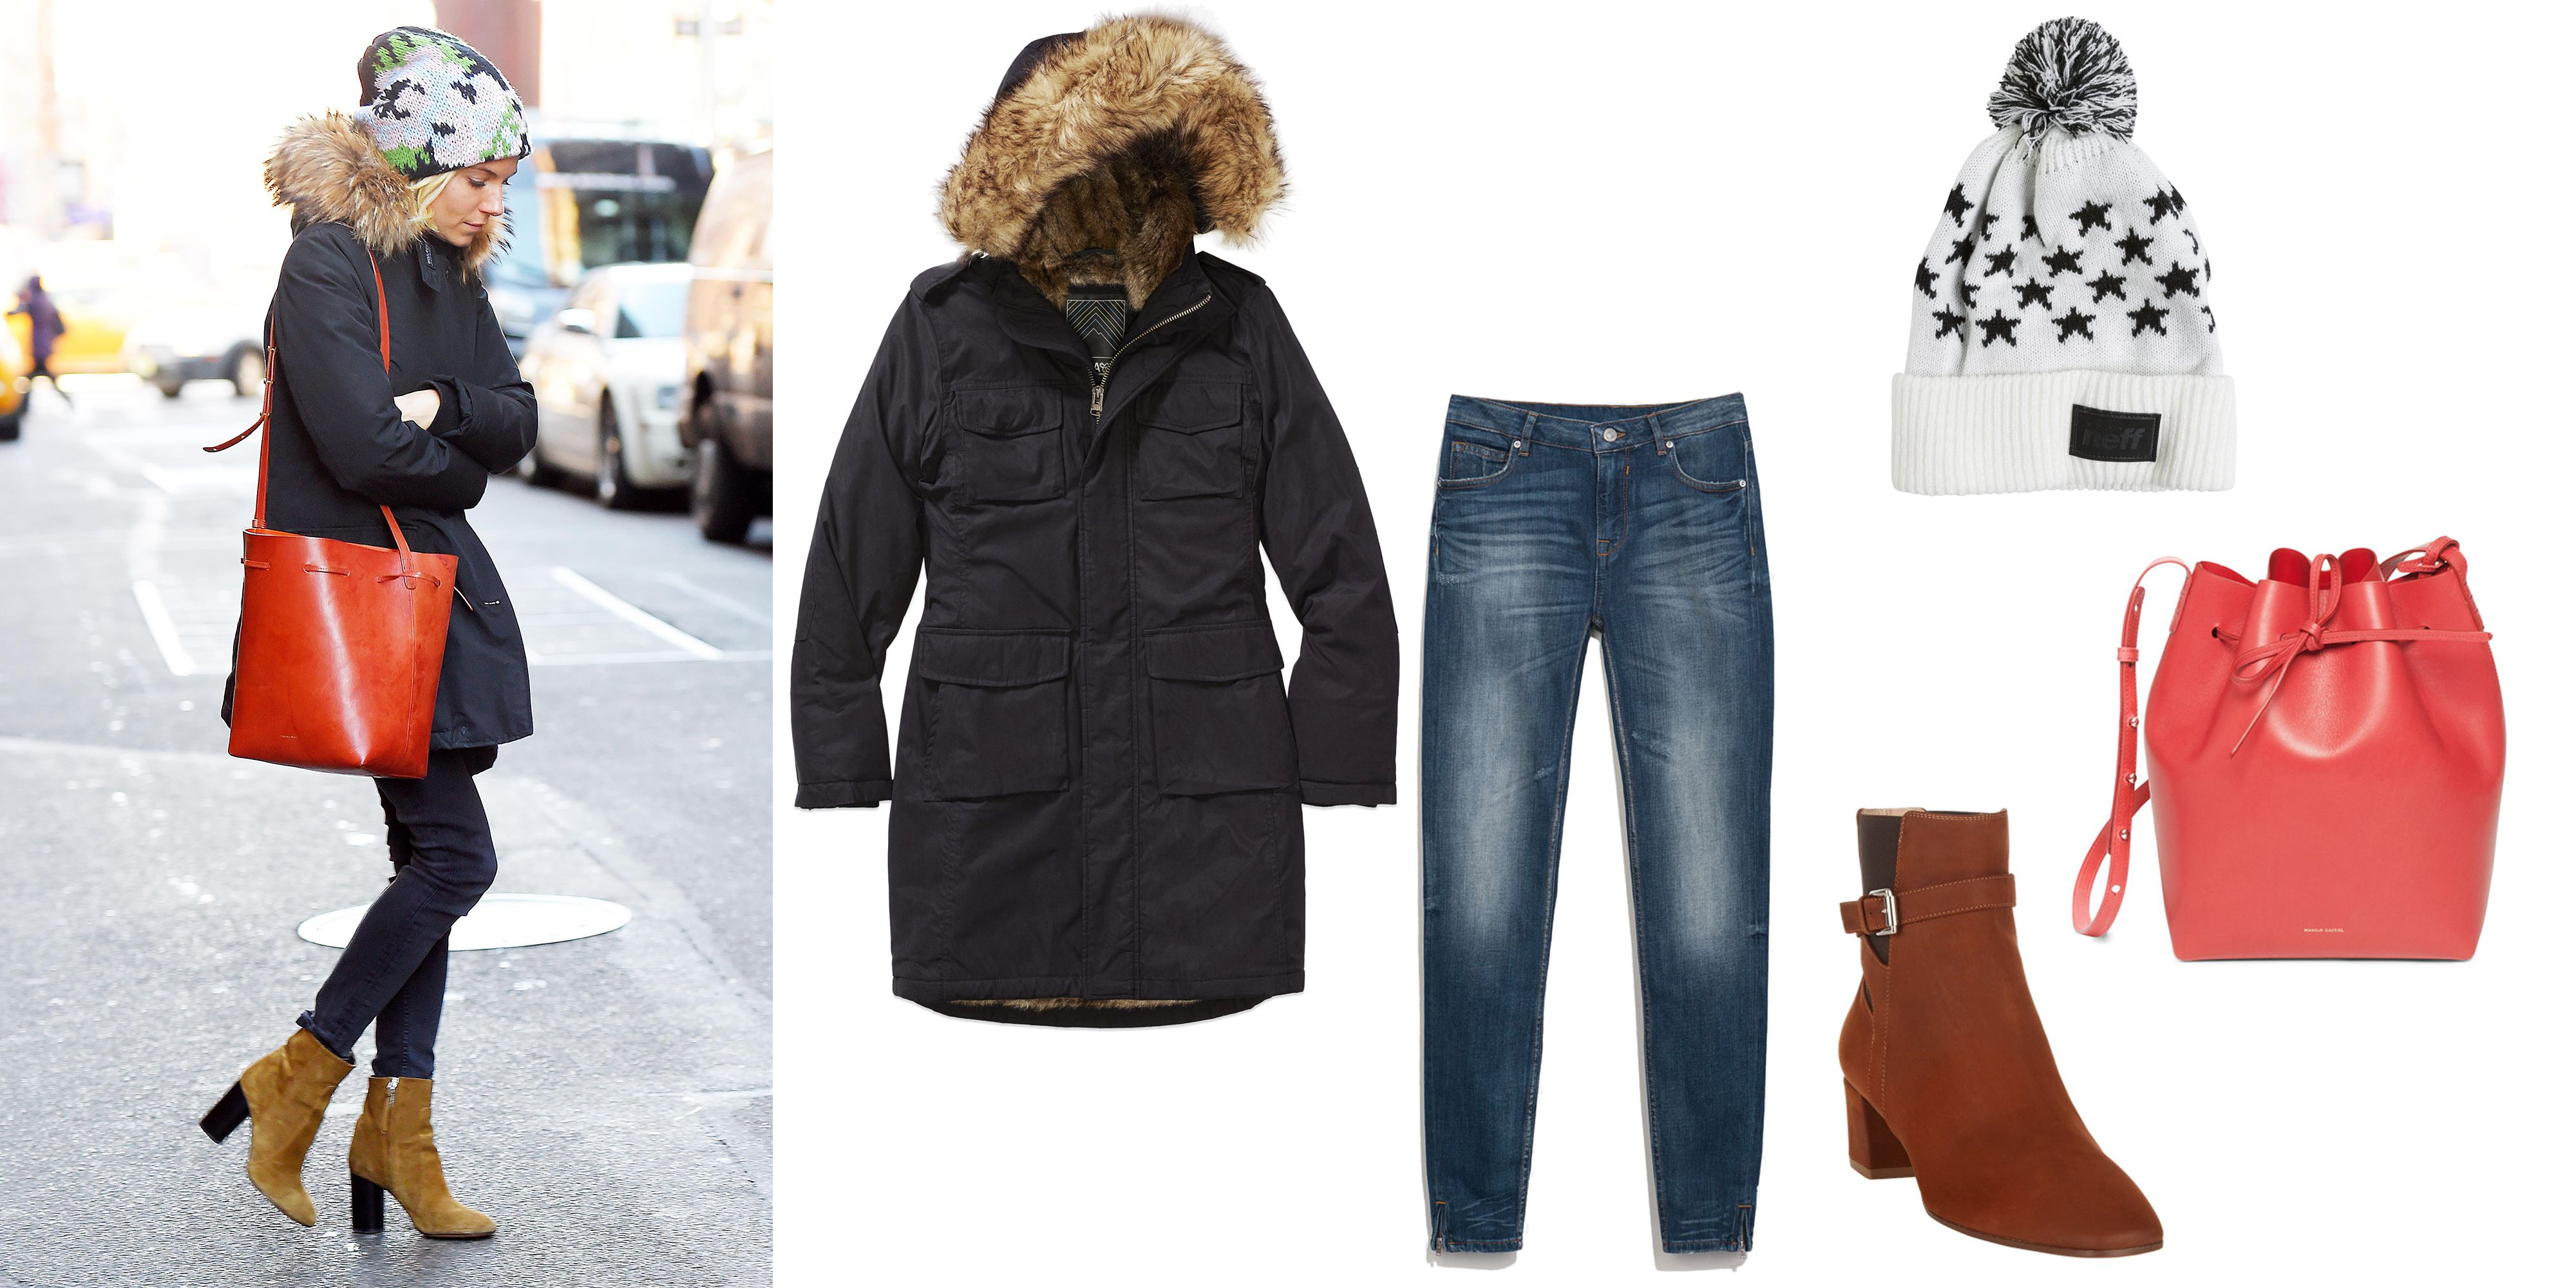 """TNA Blackcomb Parka, $225; <a href=""""http://us.aritzia.com/product/blackcomb-parka/52409.html?dwvar_52409_color=1274#start=3"""">aritzia.com</a>  Mansur Gavriel Calf Coated Bucket Bag, $695; <a href=""""http://www.mansurgavriel.com/products/bucket-bag-calf-coated/flamma-flamma"""">mansurgavriel.com</a>  Gianvito Rossi Buckle-Strap Ankle Boots, $1,095; <a href=""""http://rstyle.me/n/vvczibc6jf"""">barneys.com</a>  Zara Skinny Jeans, $30; <a href=""""http://www.zara.com/us/en/sale/woman/jeans/skinny-jeans-c437611p2012503.html"""">zara.com</a>  Neff Starboard Pom Beanie, $19; <a href=""""http://rstyle.me/n/vvcz2bc6jf"""">swell.com</a>"""